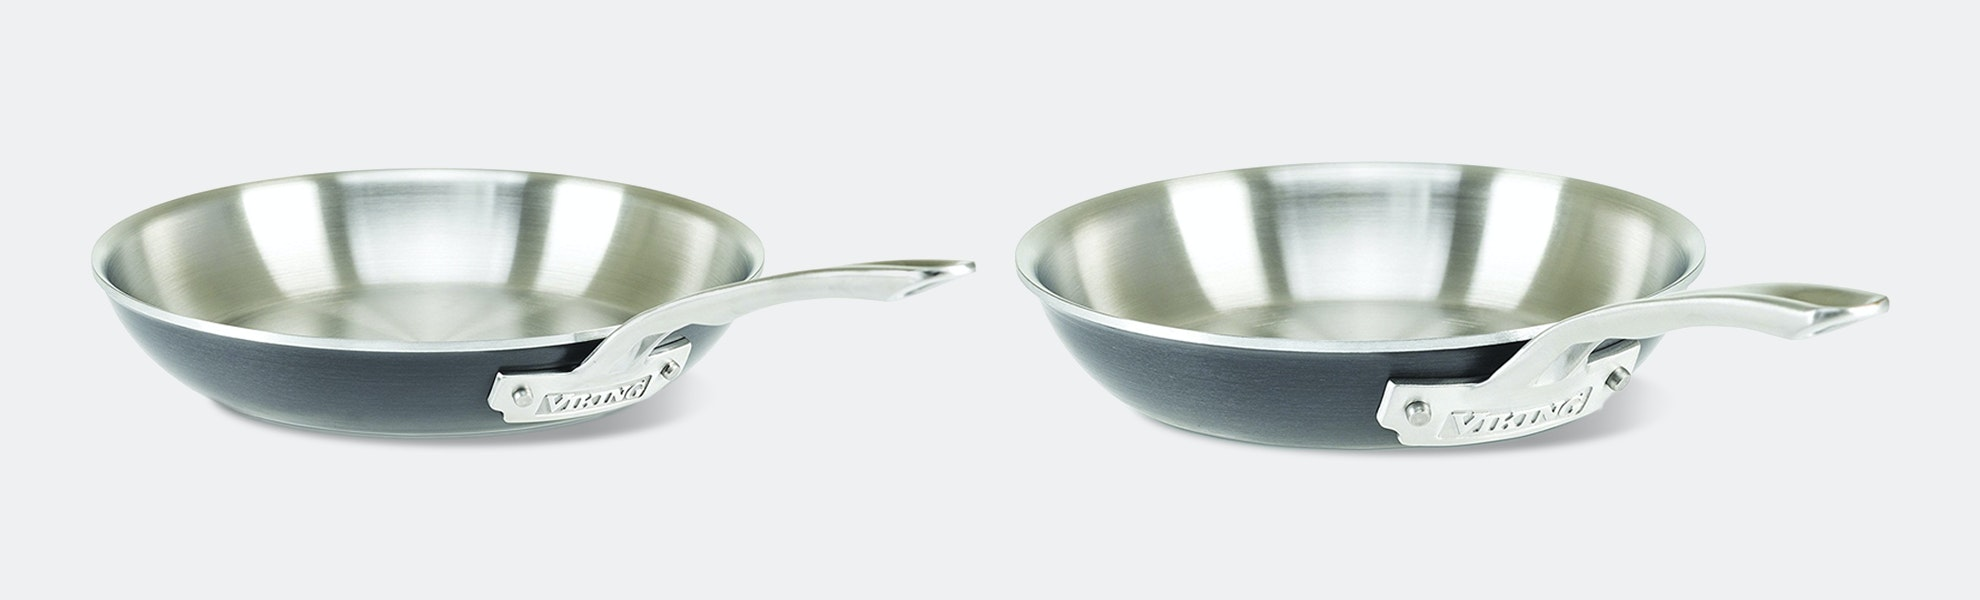 Viking Hard Stainless 5-Ply Fry Pans